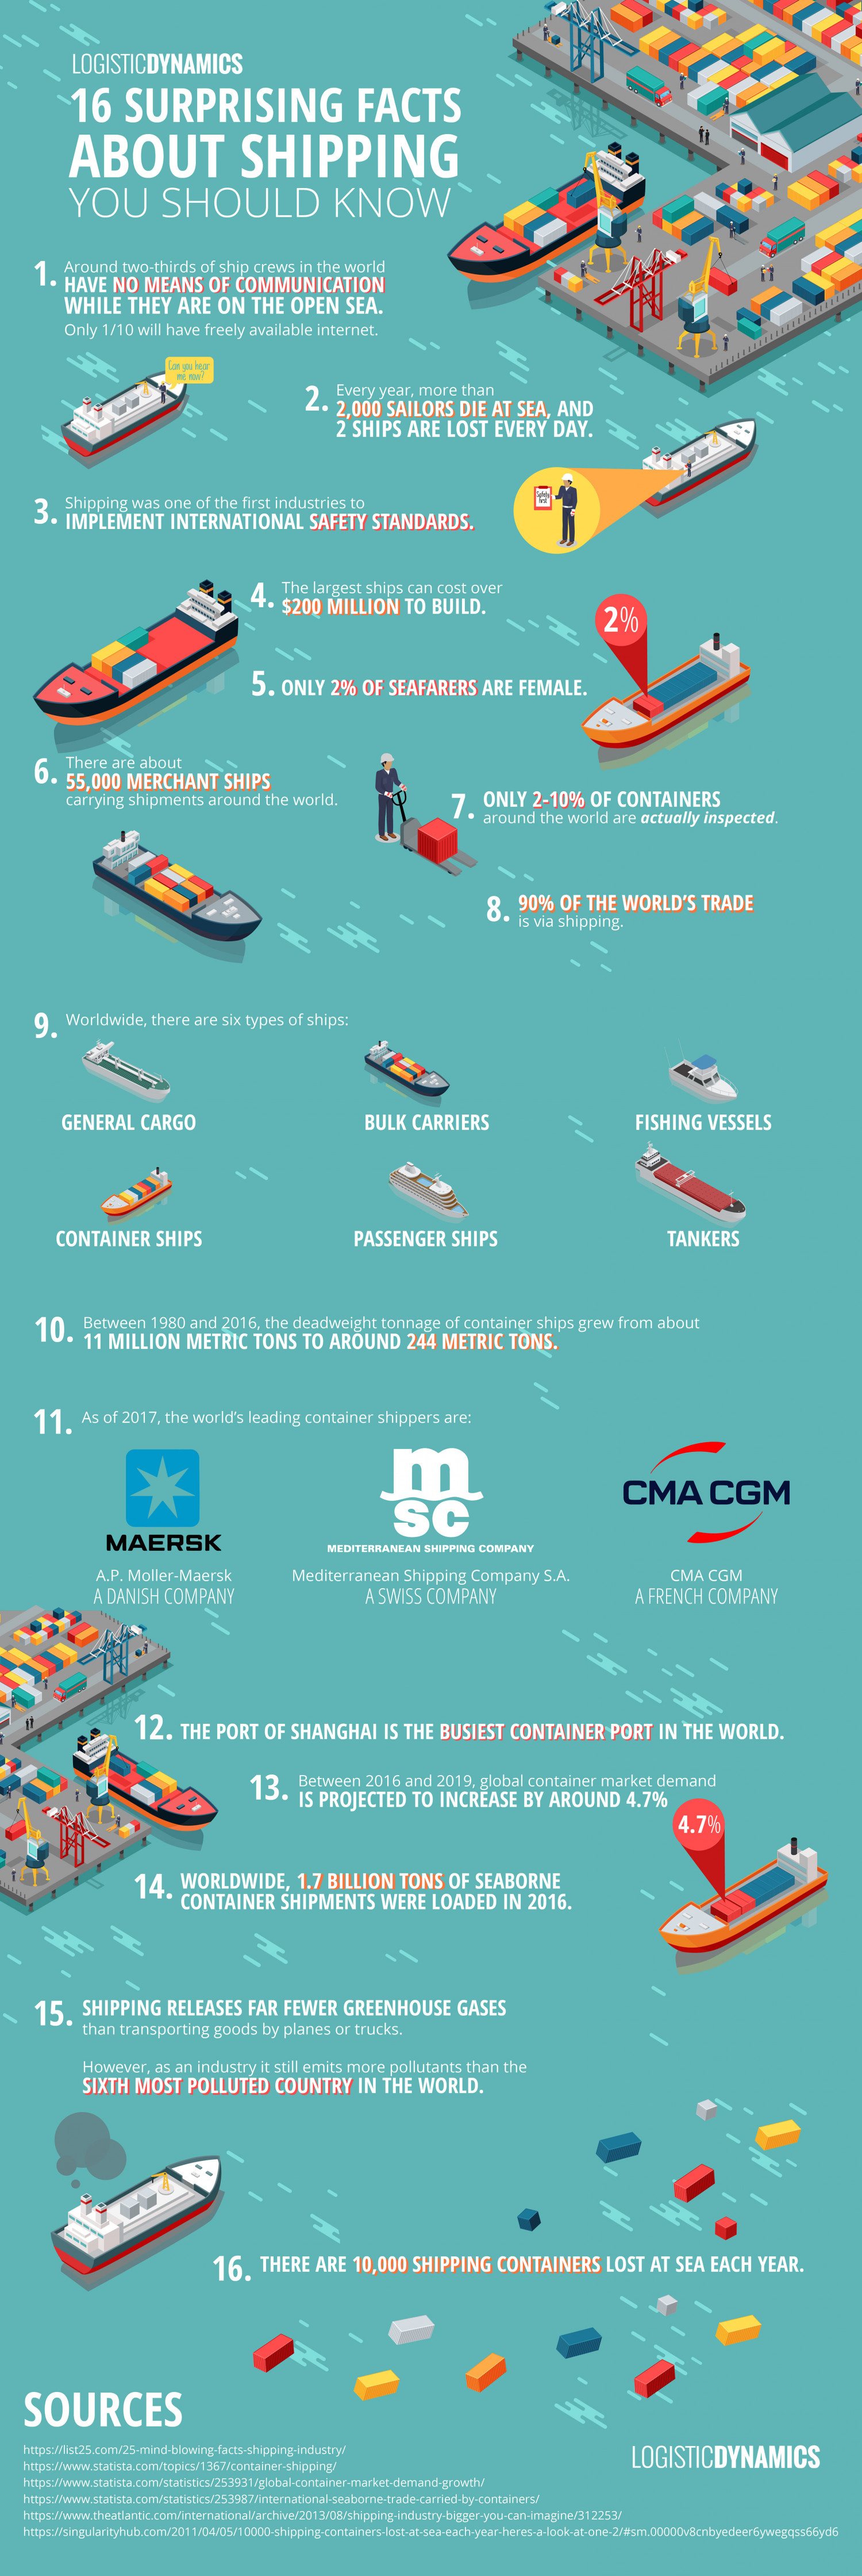 16 Surprising Facts About Shipping You Should Know Infographic